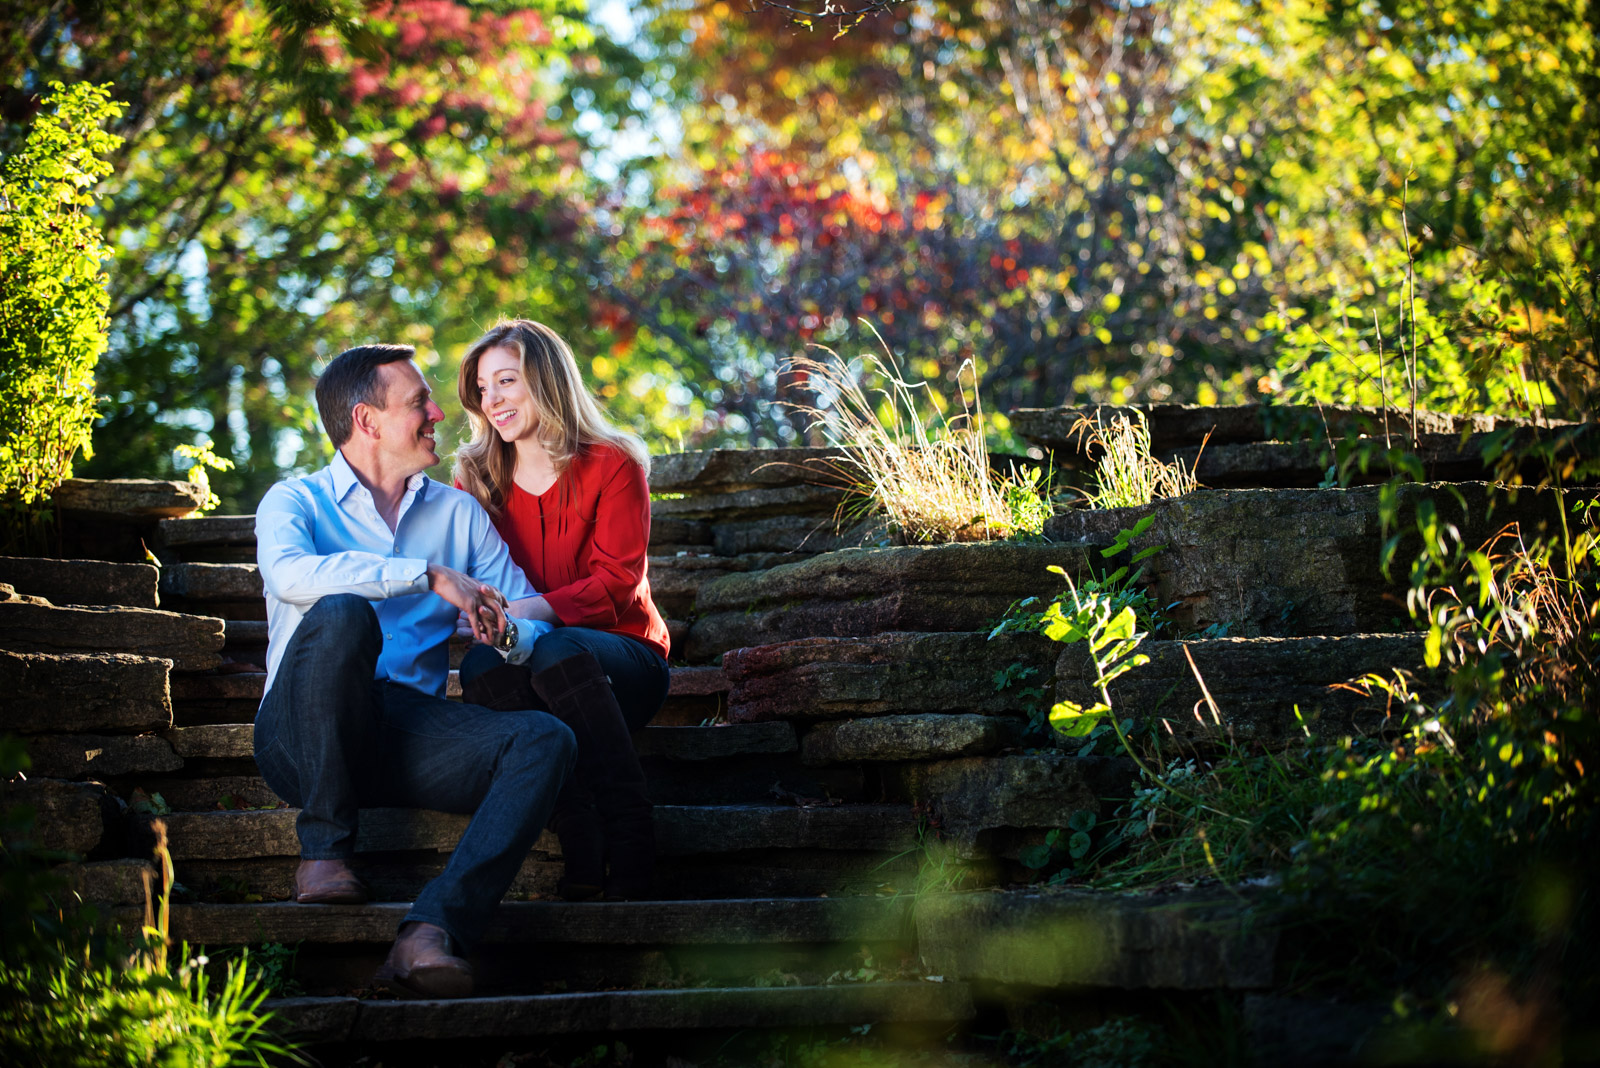 Chicago Engagement Session in the Fall with colorful leaves changing colors